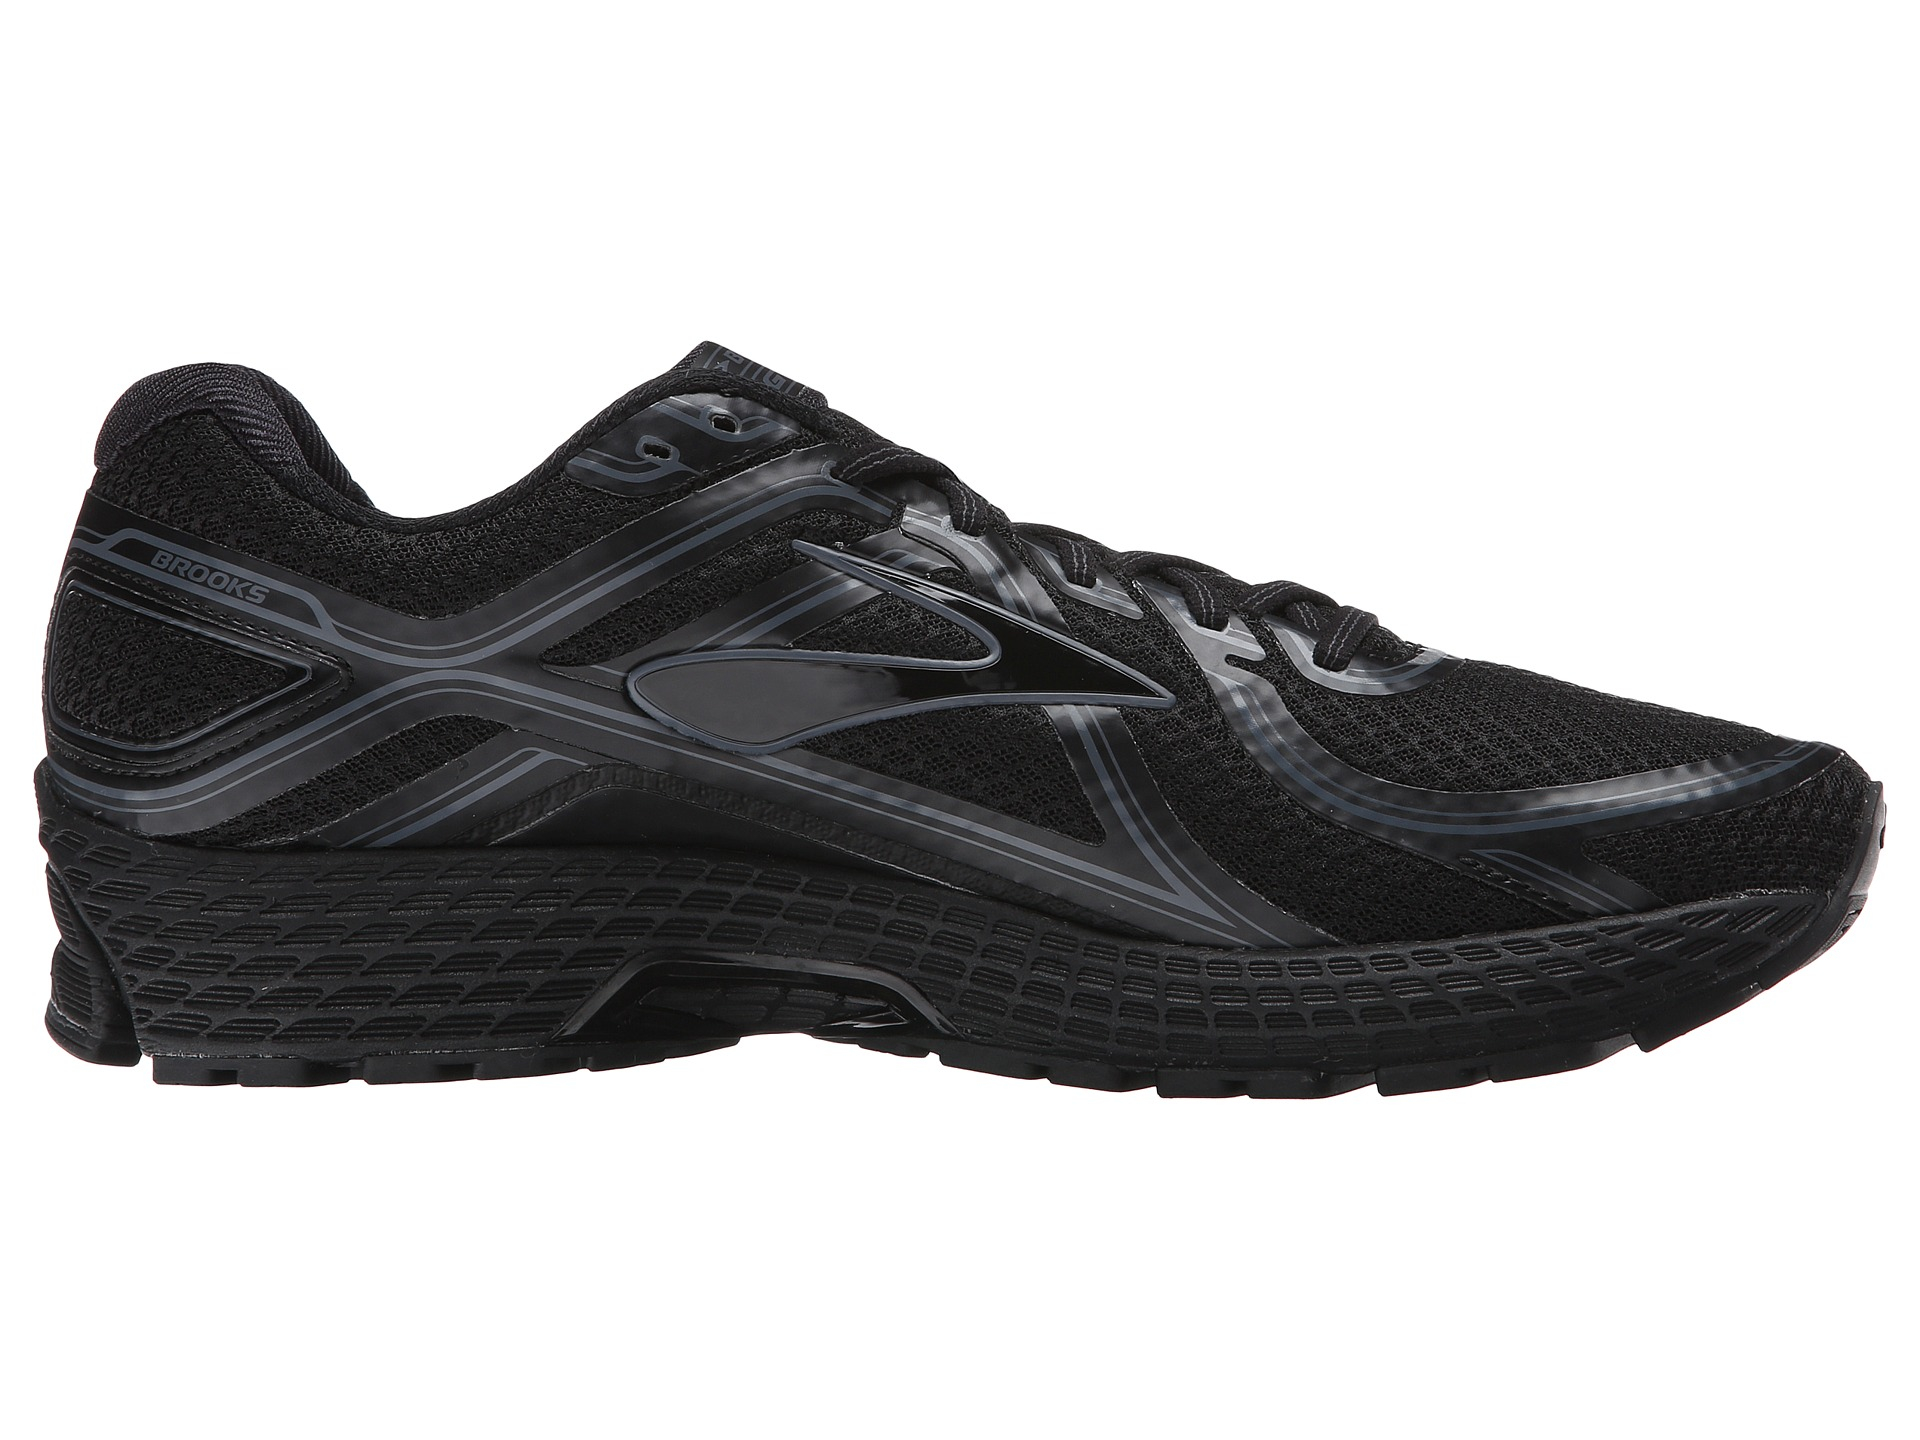 brooks black single men Free shipping both ways on brooks, sneakers & athletic shoes, men, from our vast selection of styles fast delivery, and 24/7/365 real-person service with a smile.